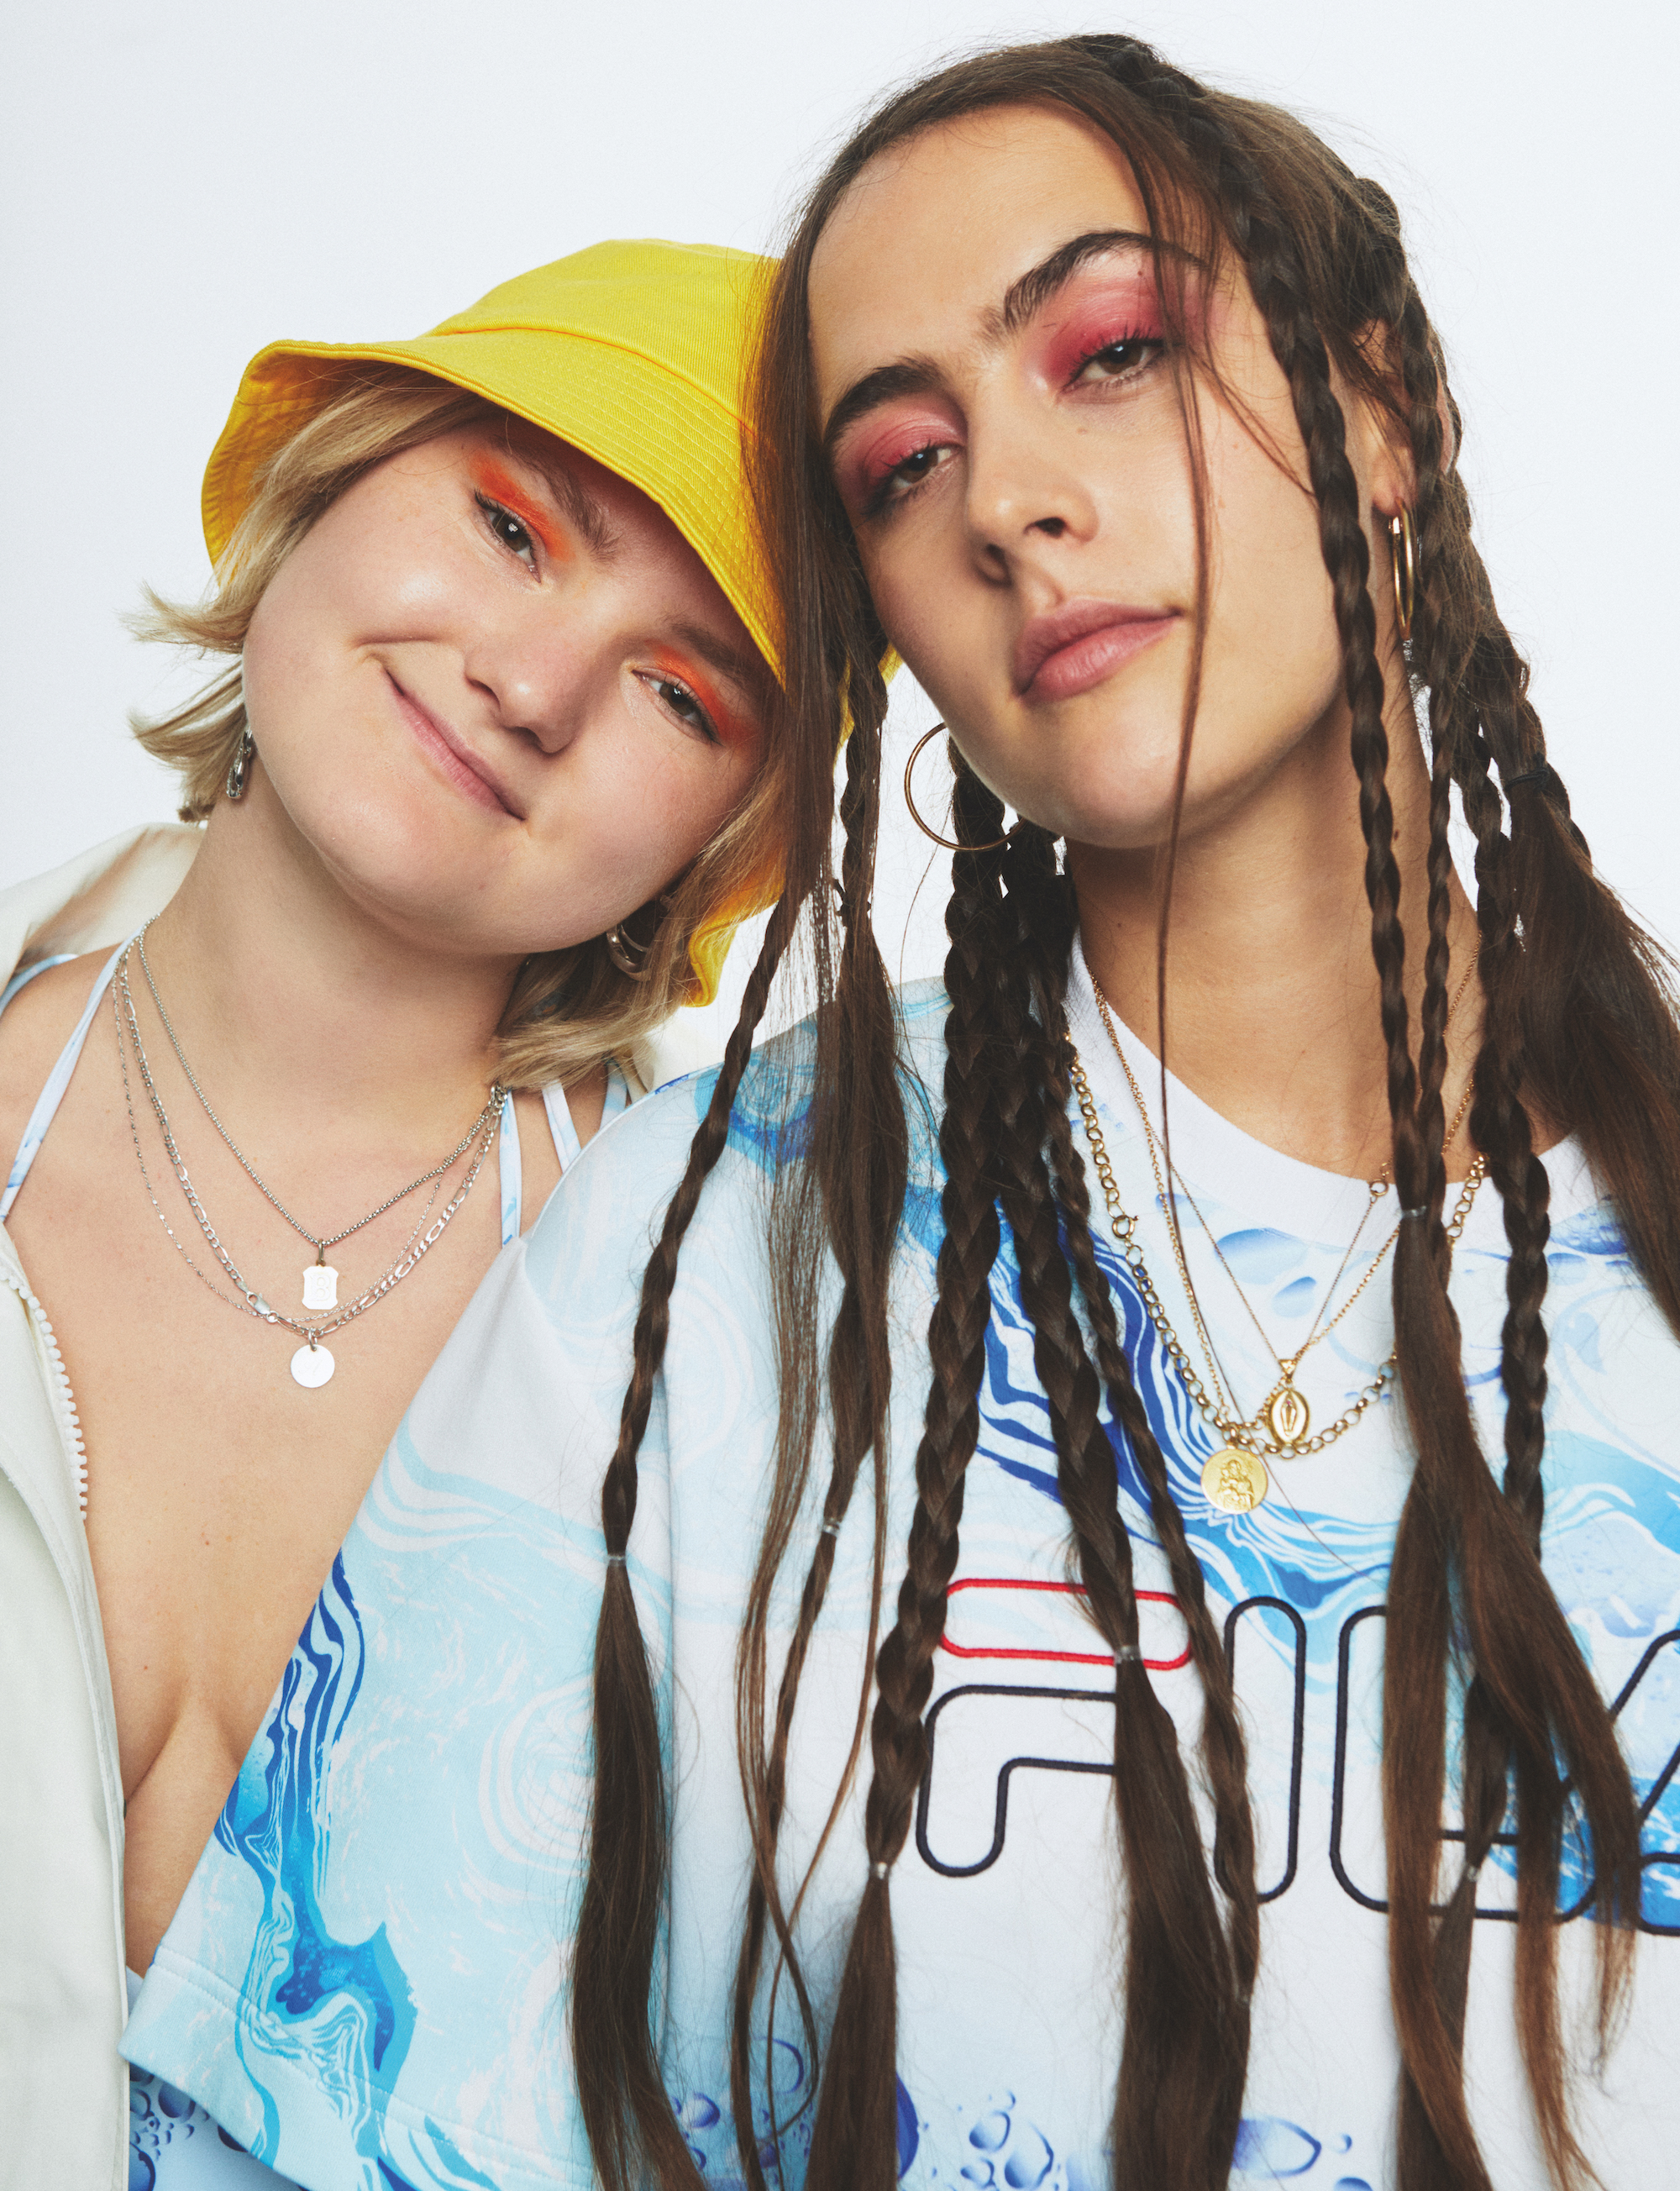 Hinds wearing yellow hate and braided hair